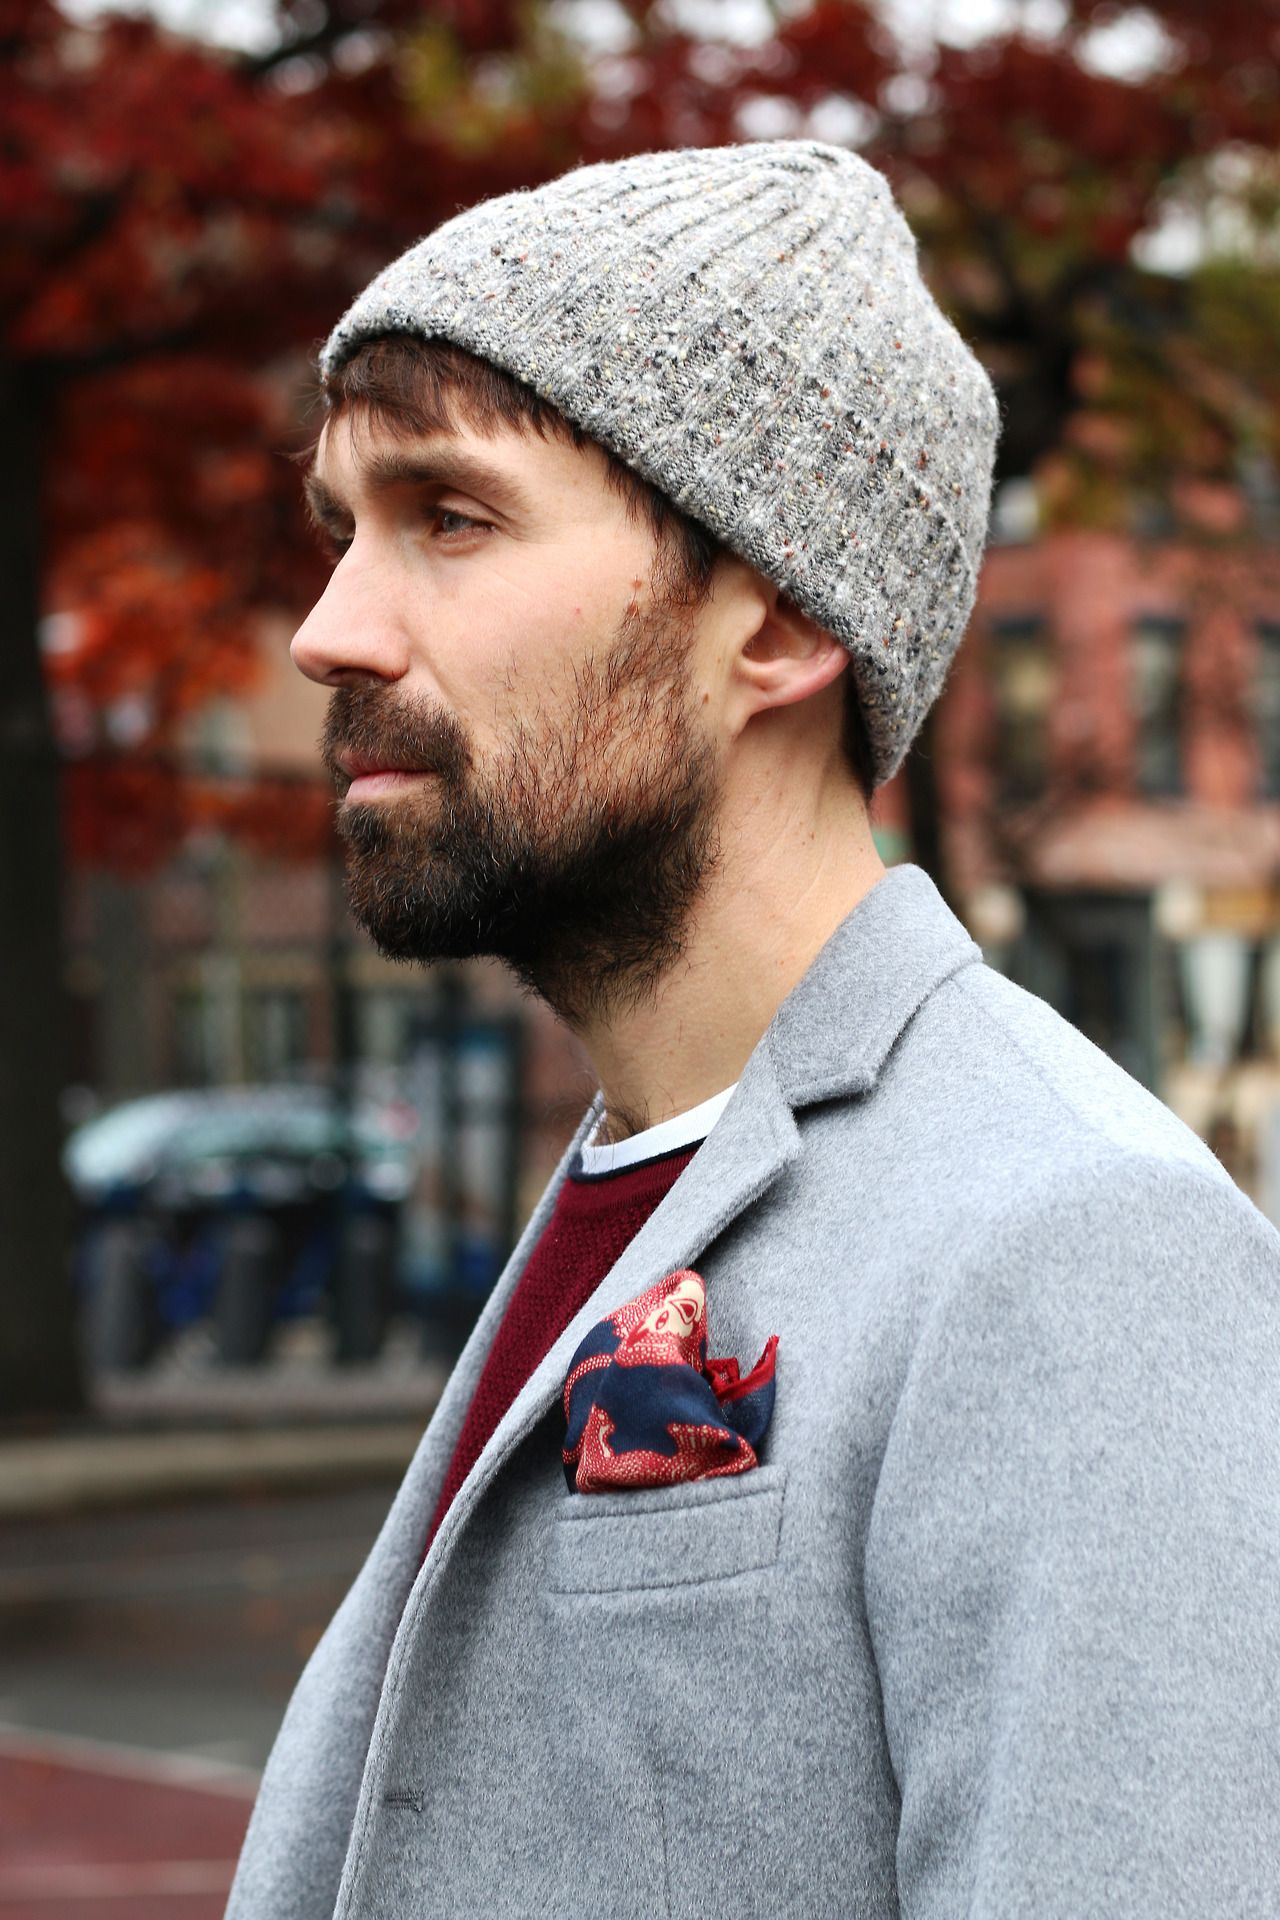 Shop the Look BROOKLYN TAILORS - Angora Wool Unstructured Blazer in Grey  DRAKE S - Merino Donegal Hat Knit in Grey with Flecks DRAKE S - Navy Lion  Print ... 196963c5798